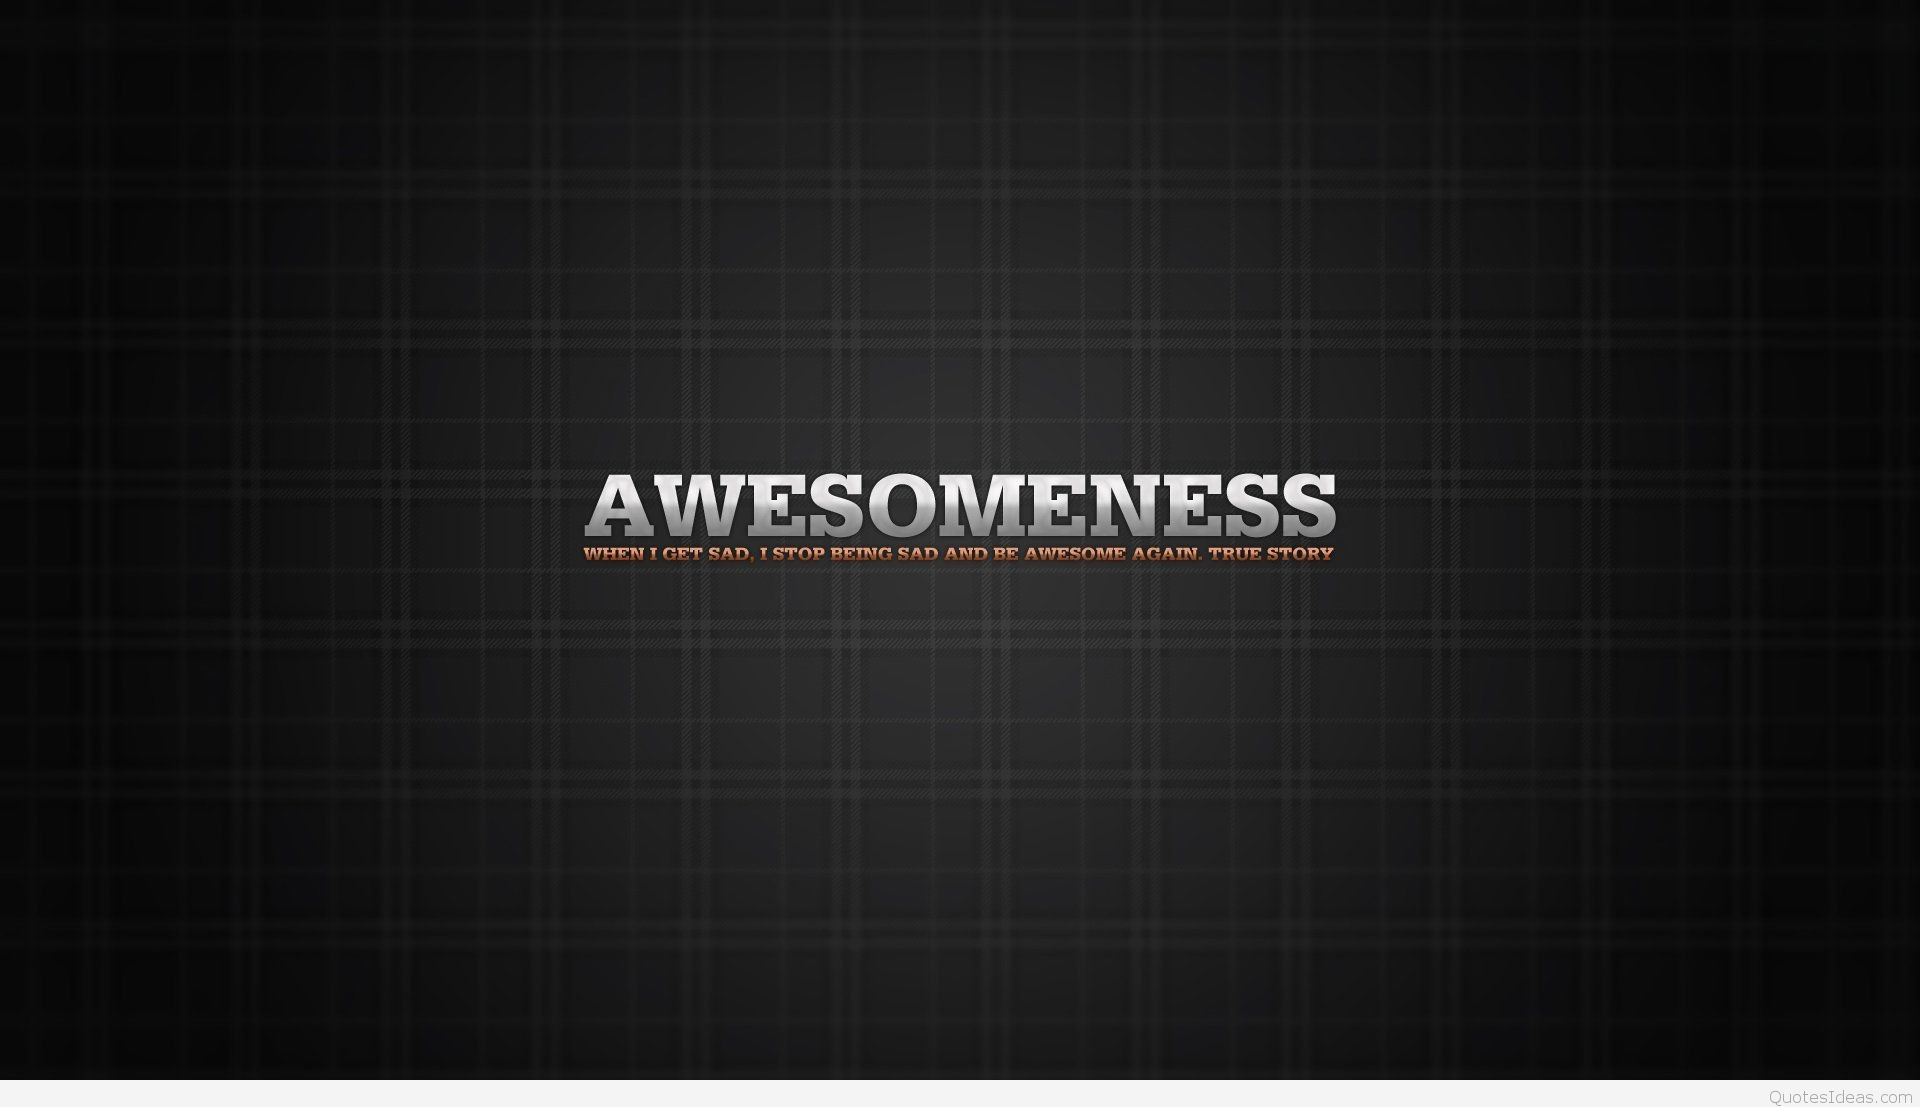 1375412669-awesomeness-full-hd-1080p-wallpaper-funny-quote-